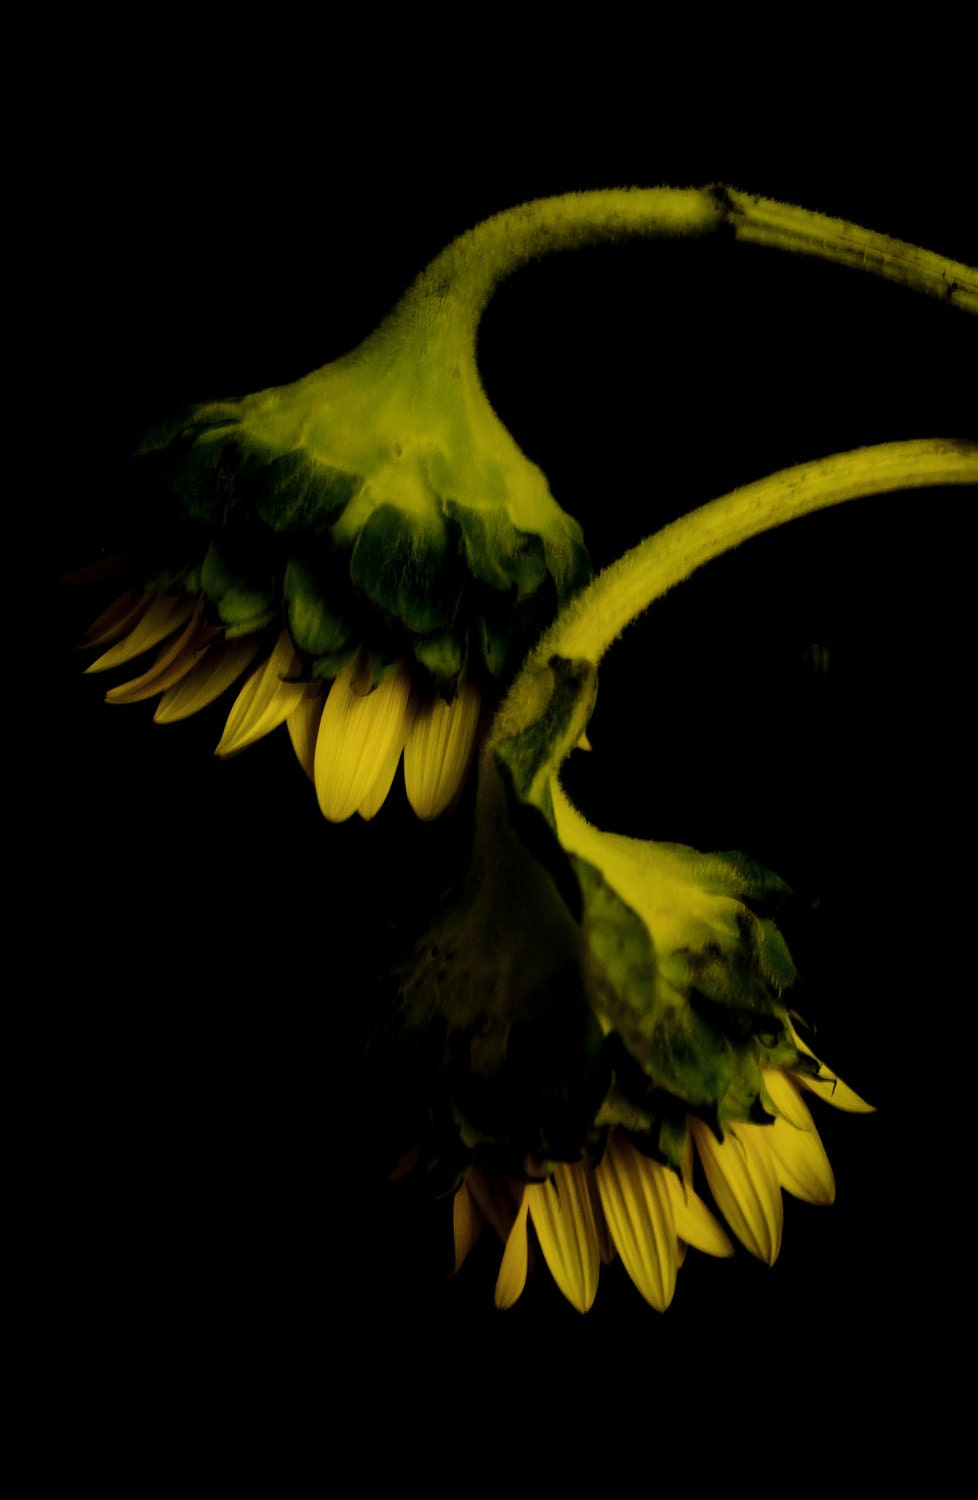 Lost Violent Souls - Dead Sunflower Series - Fine Art Photography by Sabato Visconti - Archival Print - 8 x 12 - Signed - Sabatobox